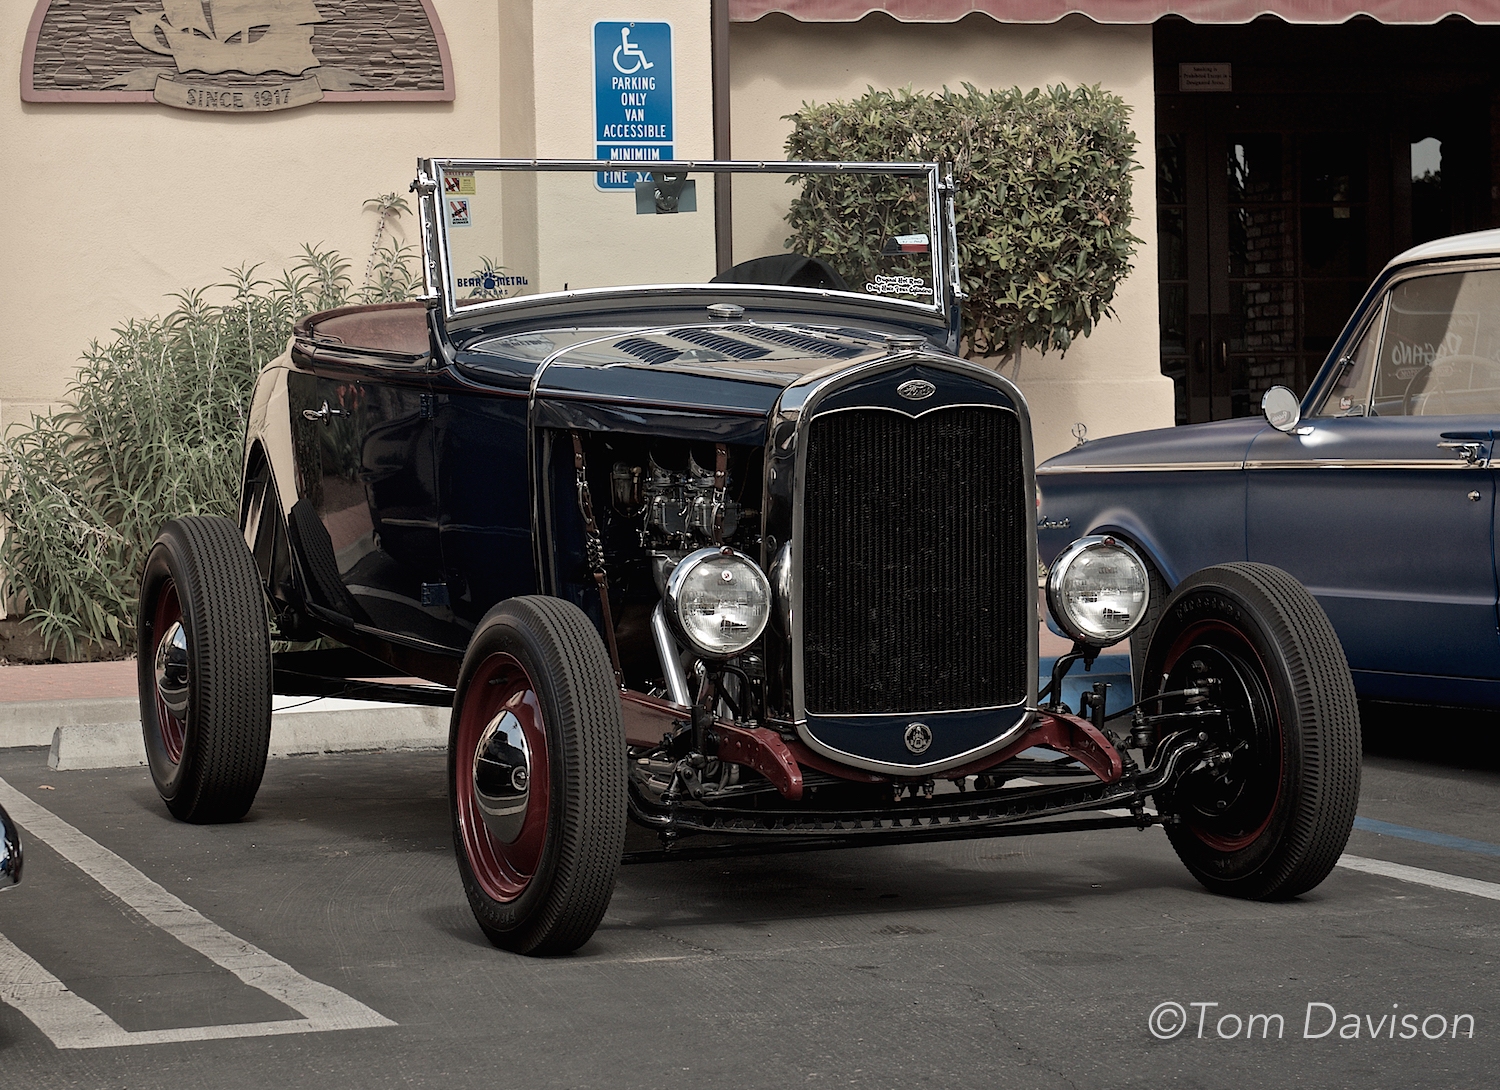 An outstanding example of a typical Model A Ford hot rod roadster.